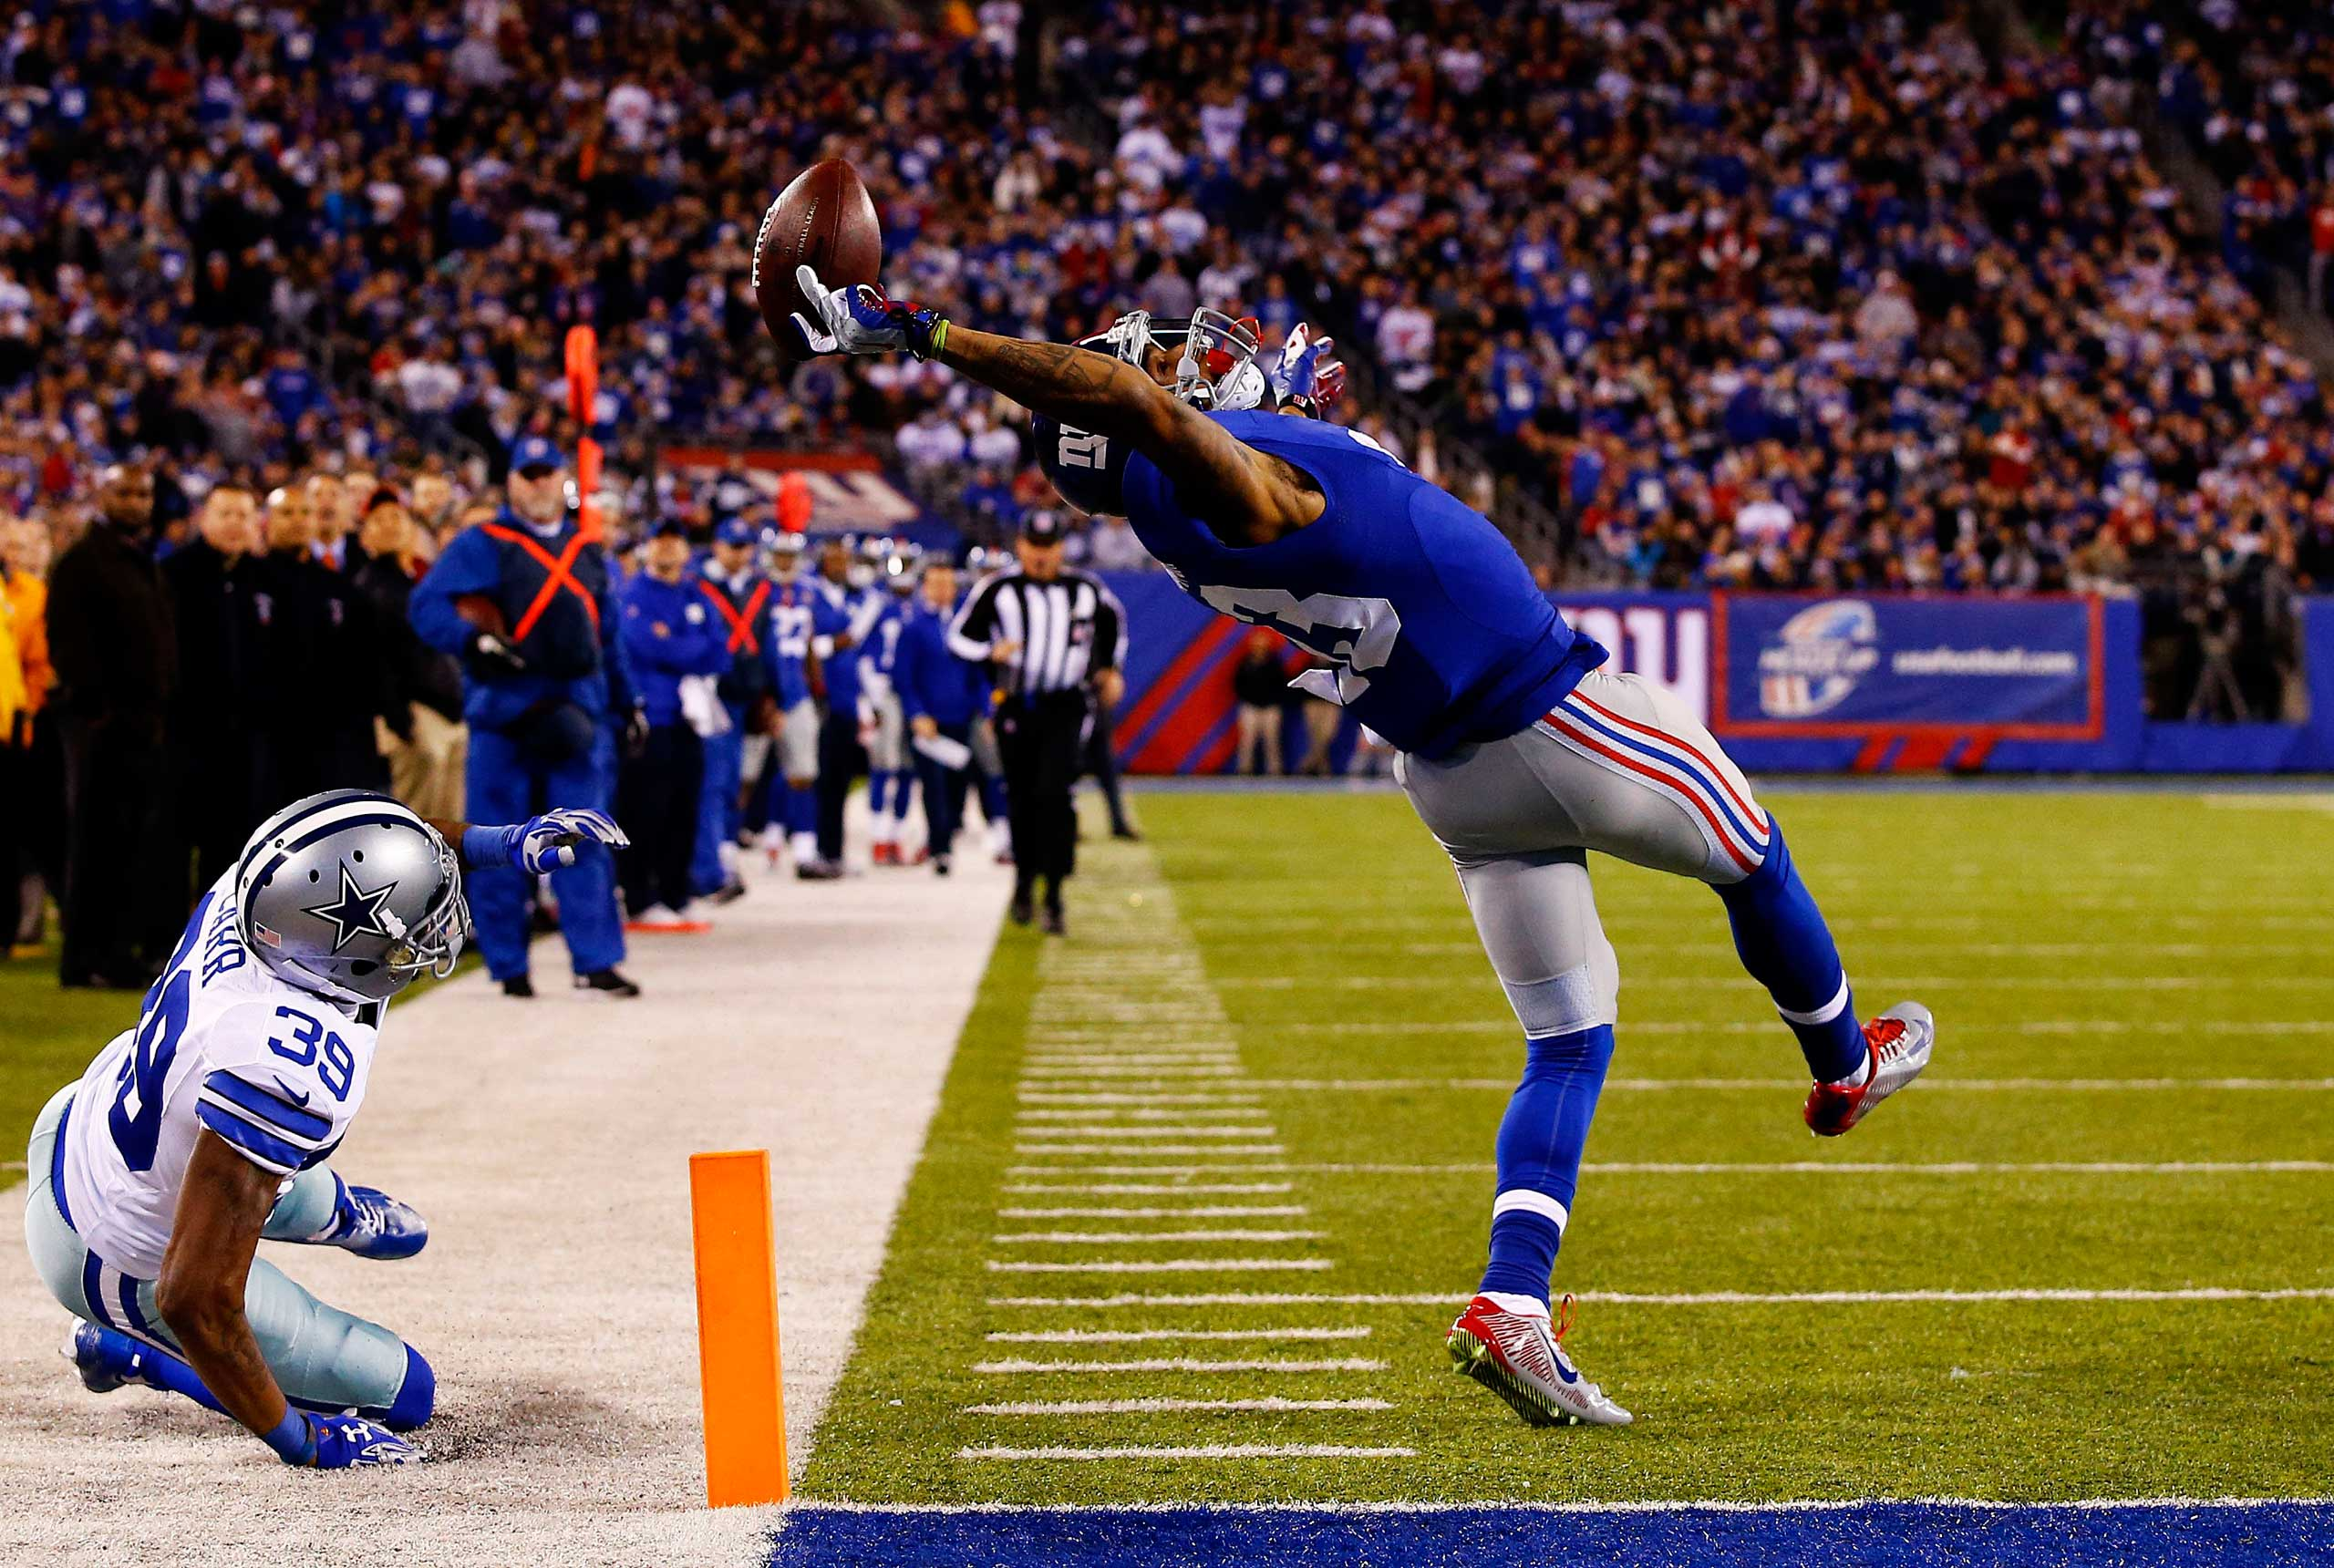 Nov. 23, 2014. Odell Beckham #13 of the New York Giants scores a touchdown in the second quarter against the Dallas Cowboys at MetLife Stadium  in East Rutherford, New Jersey.